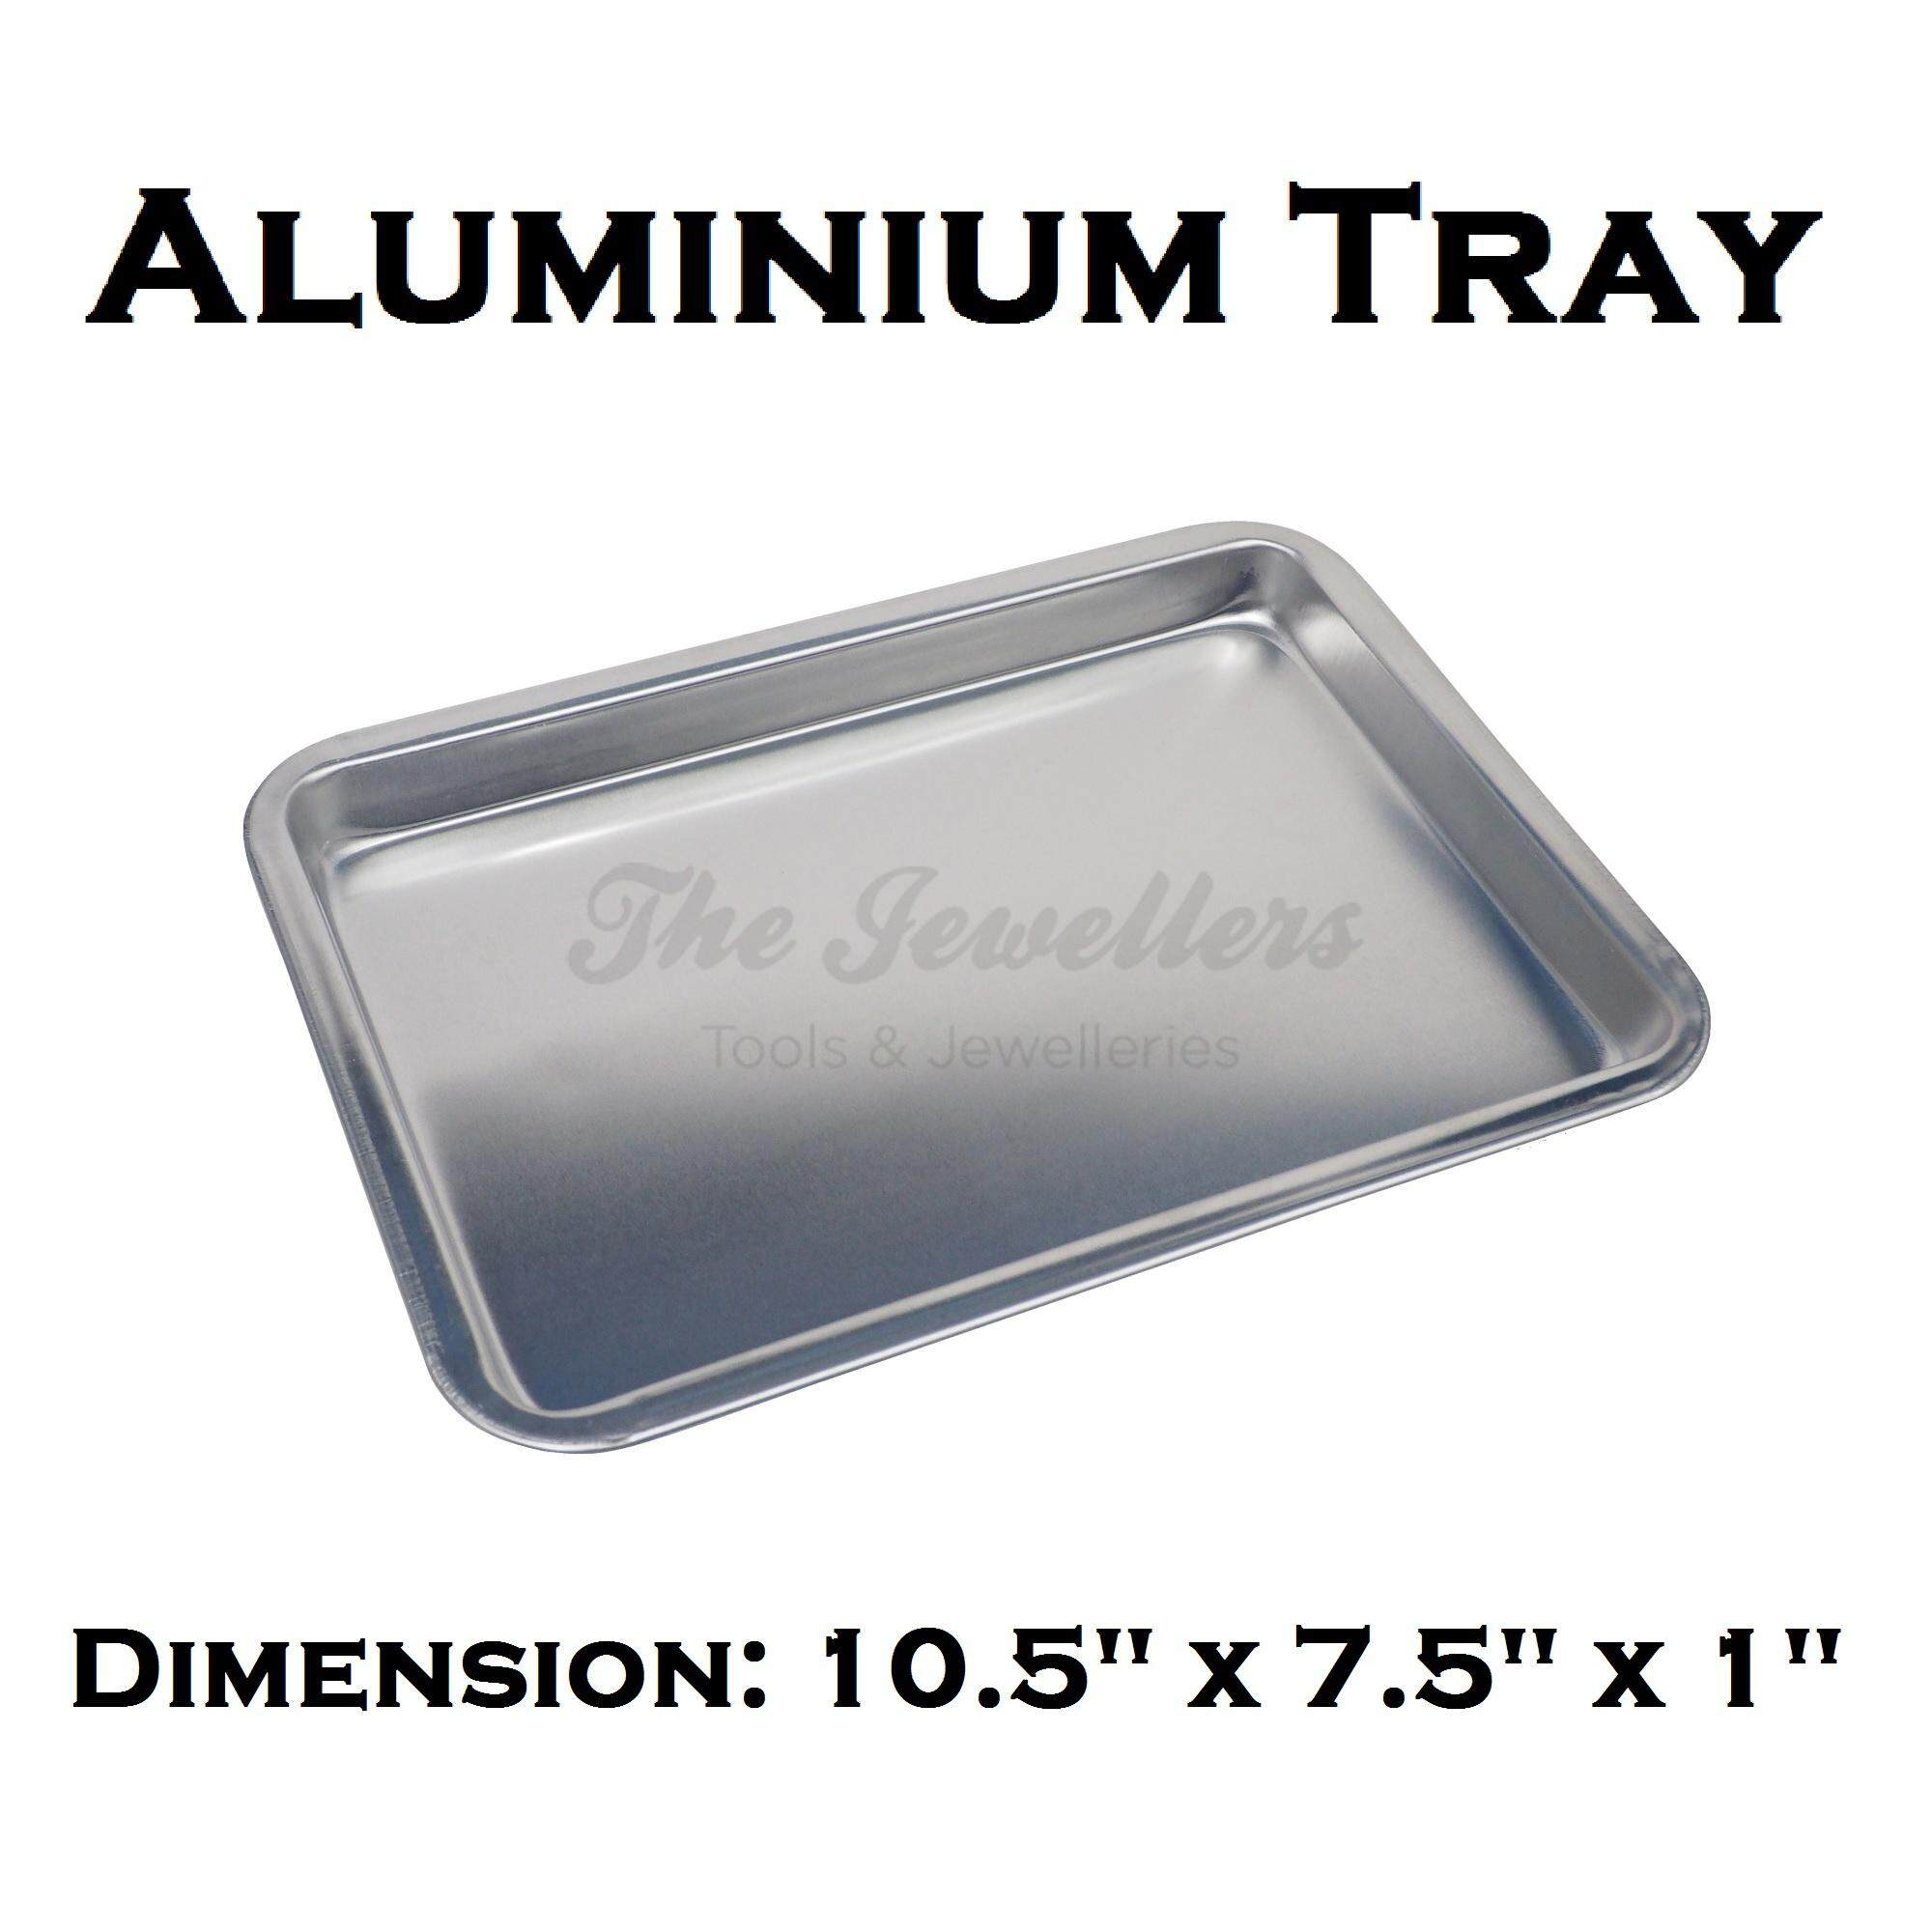 Aluminium Tray Bakeware Oven Sheet, Baking Pan Tray for Cookies, Pizza, and Cakes Dimension: 10.5